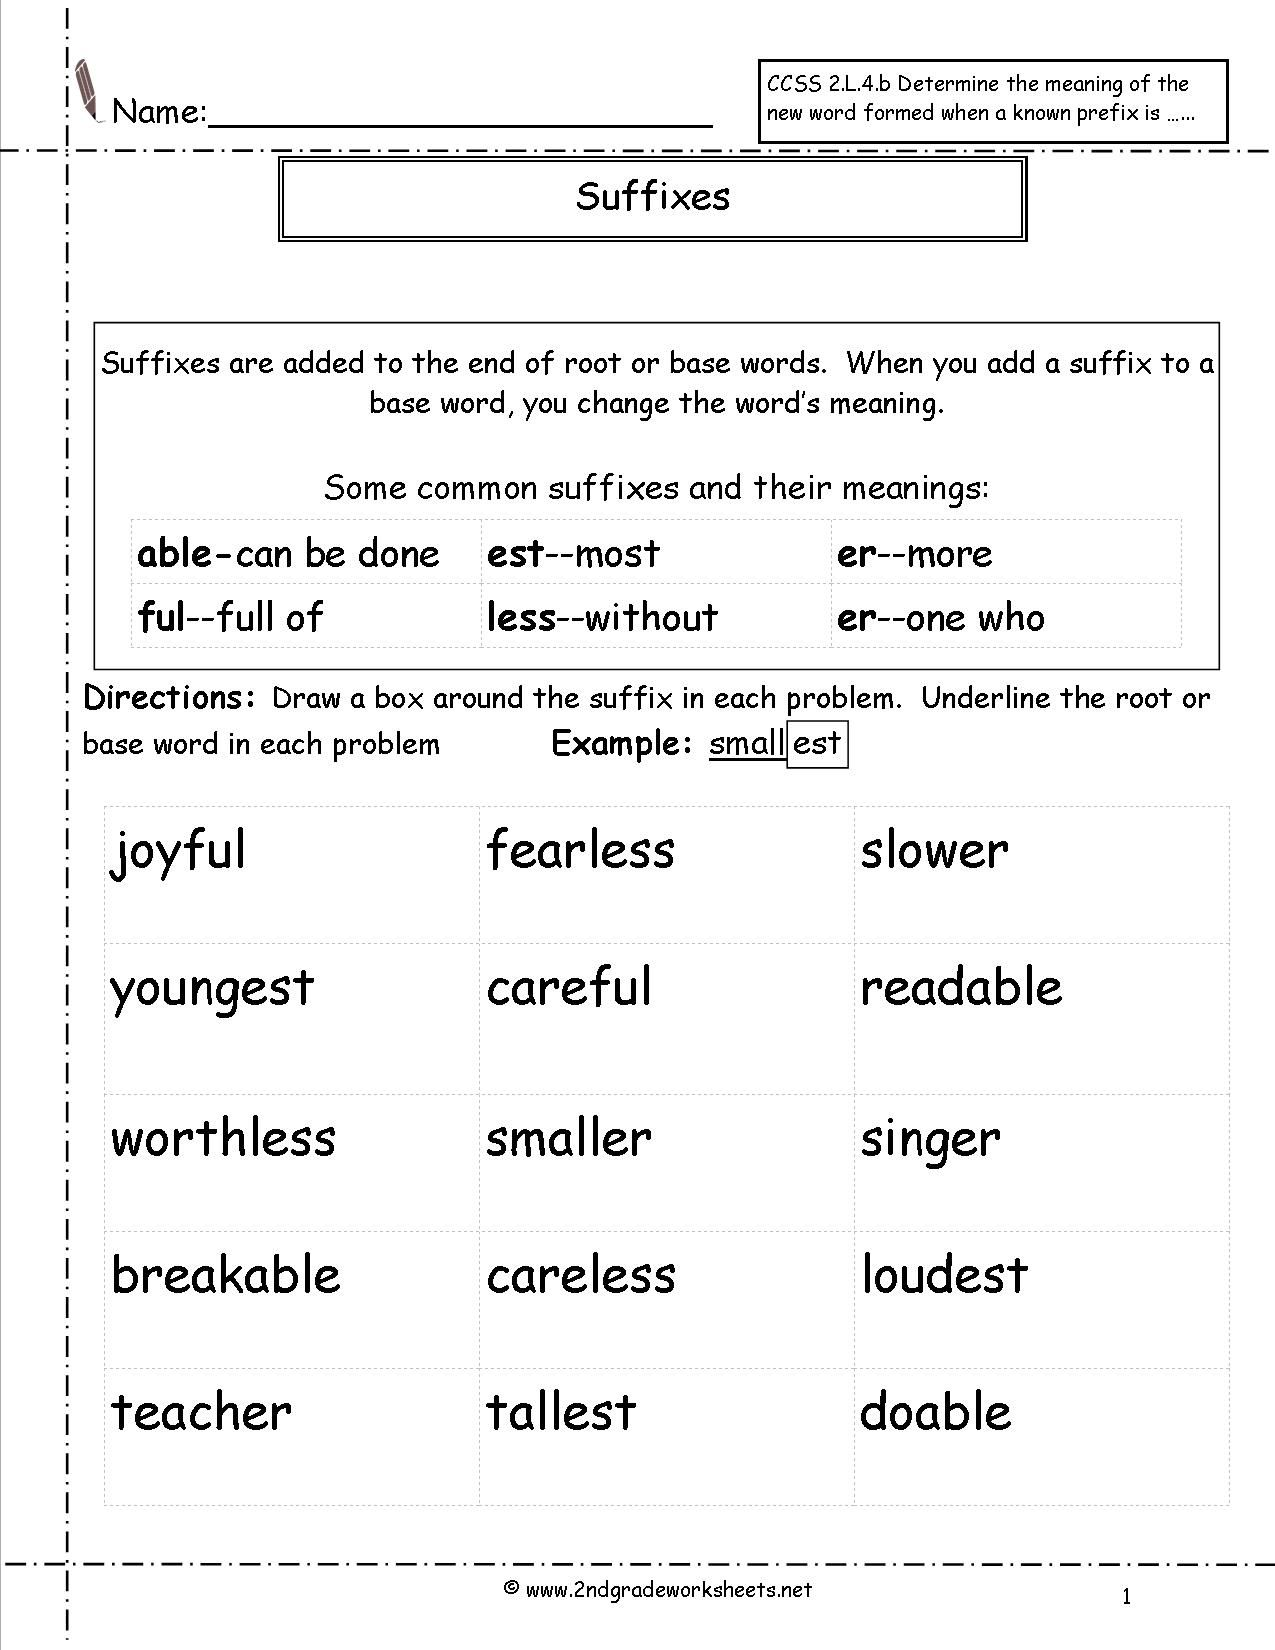 Pin by Laura Bradbury on Spring Unit in 2020   Suffixes worksheets [ 1650 x 1275 Pixel ]